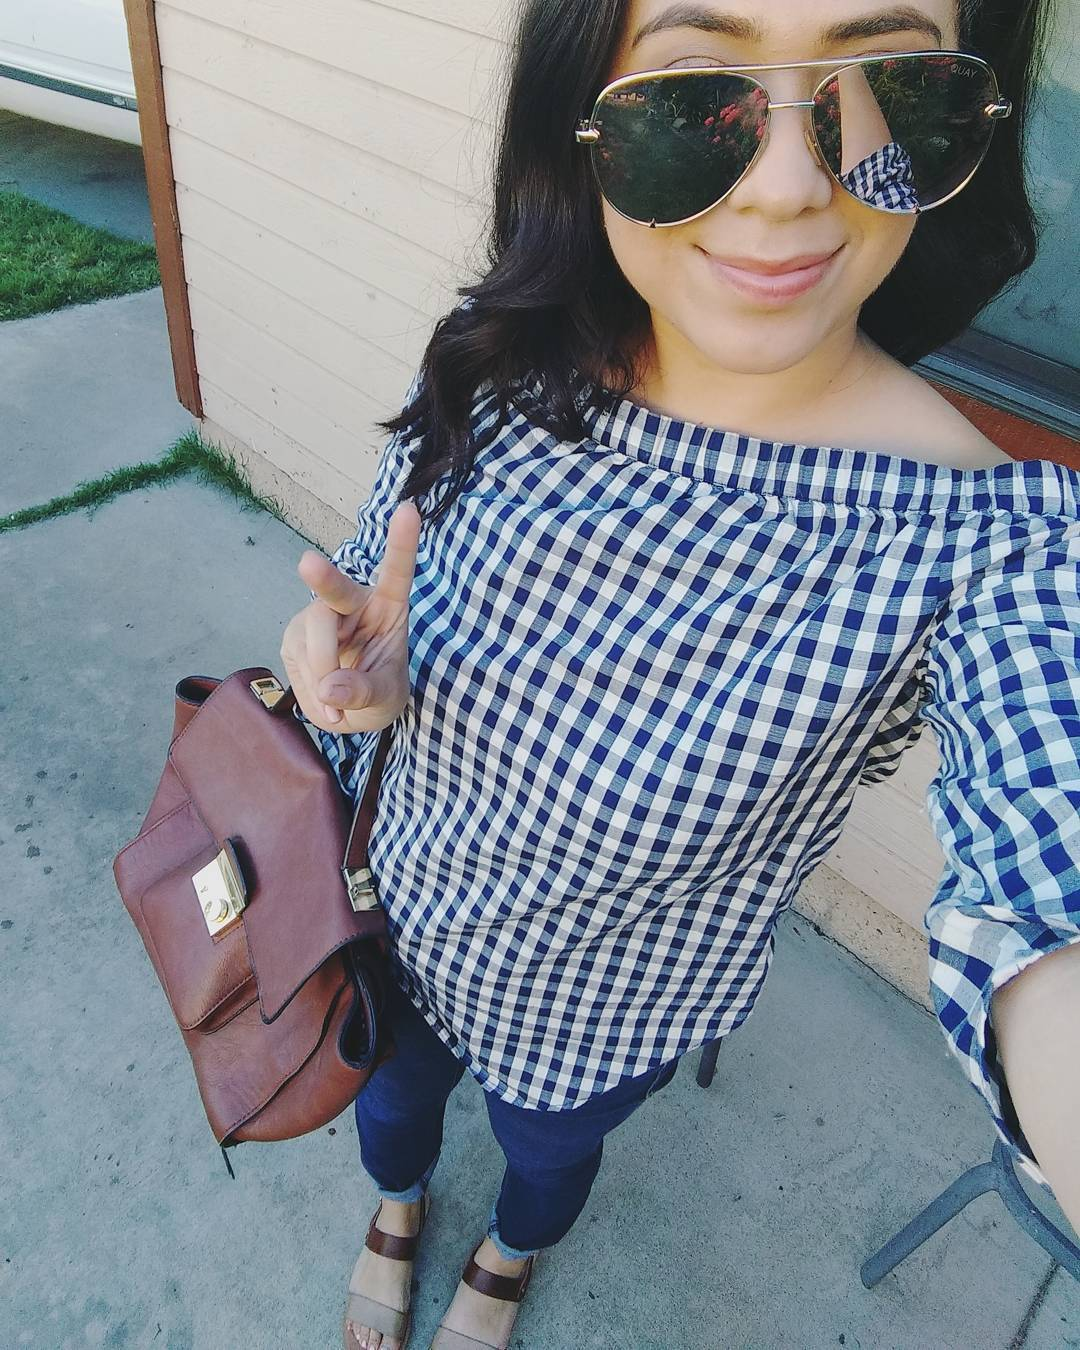 Rocking Off Shoulder Gingham Print Top With Blue Jeans And Handbag